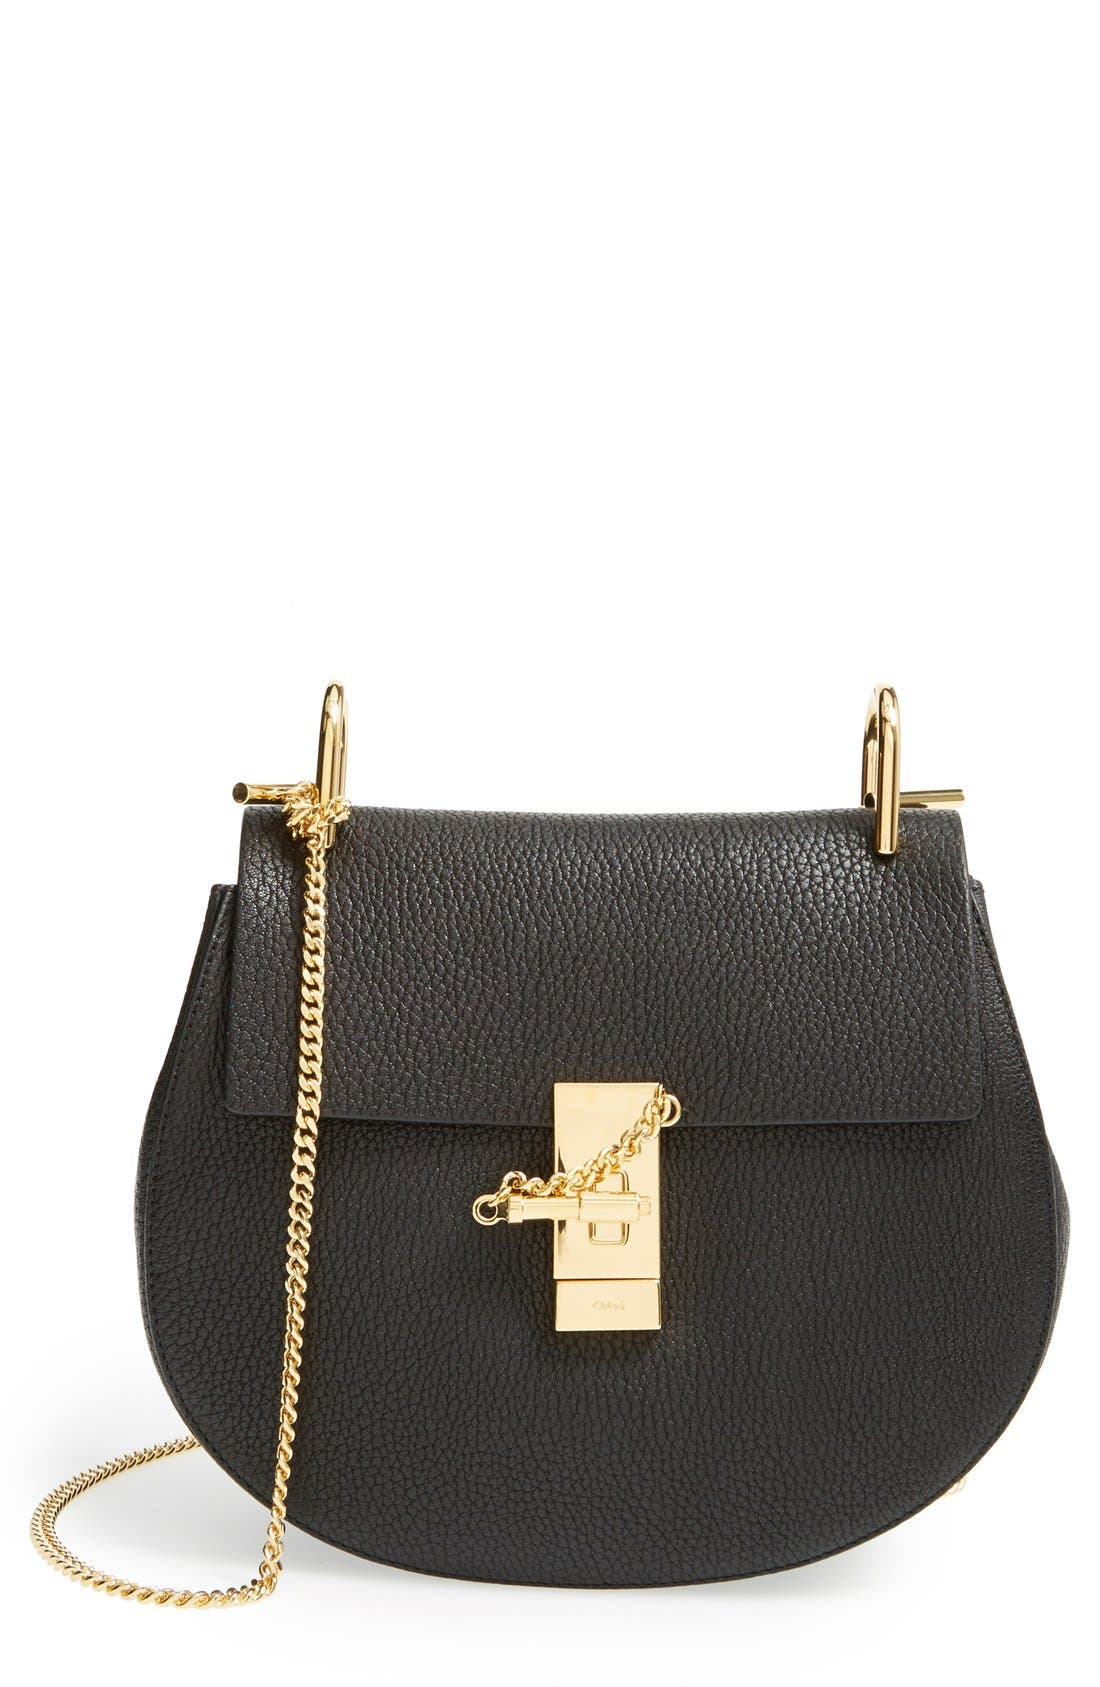 CHLOÉ Drew Leather Shoulder Bag, Main, color, BLACK GOLD HRDWRE